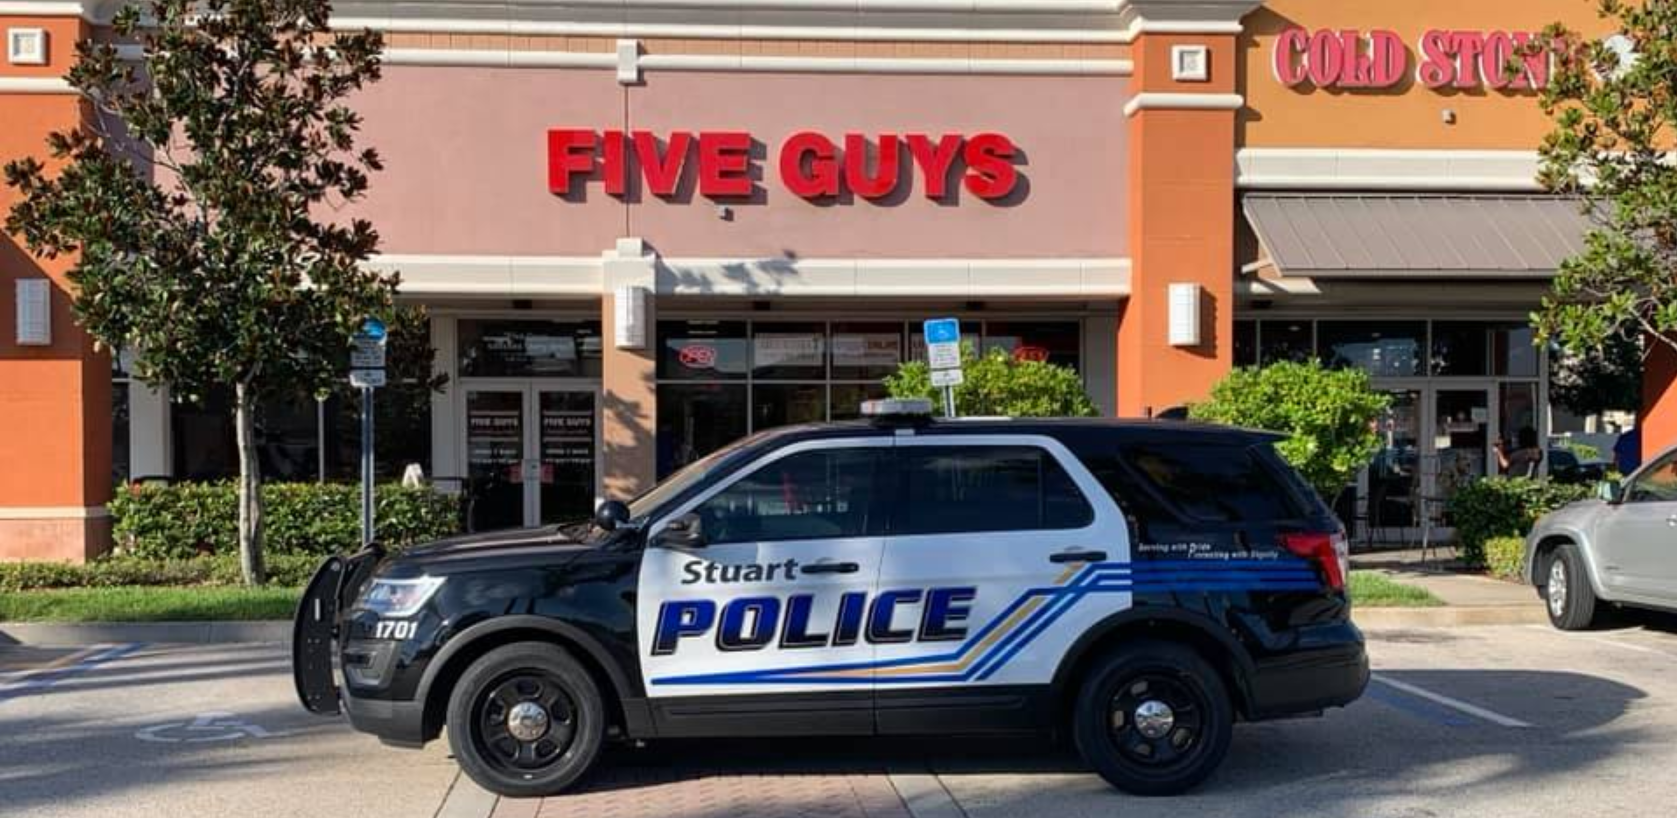 5 guys arrested at Five Guys Burgers & Fries in Florida